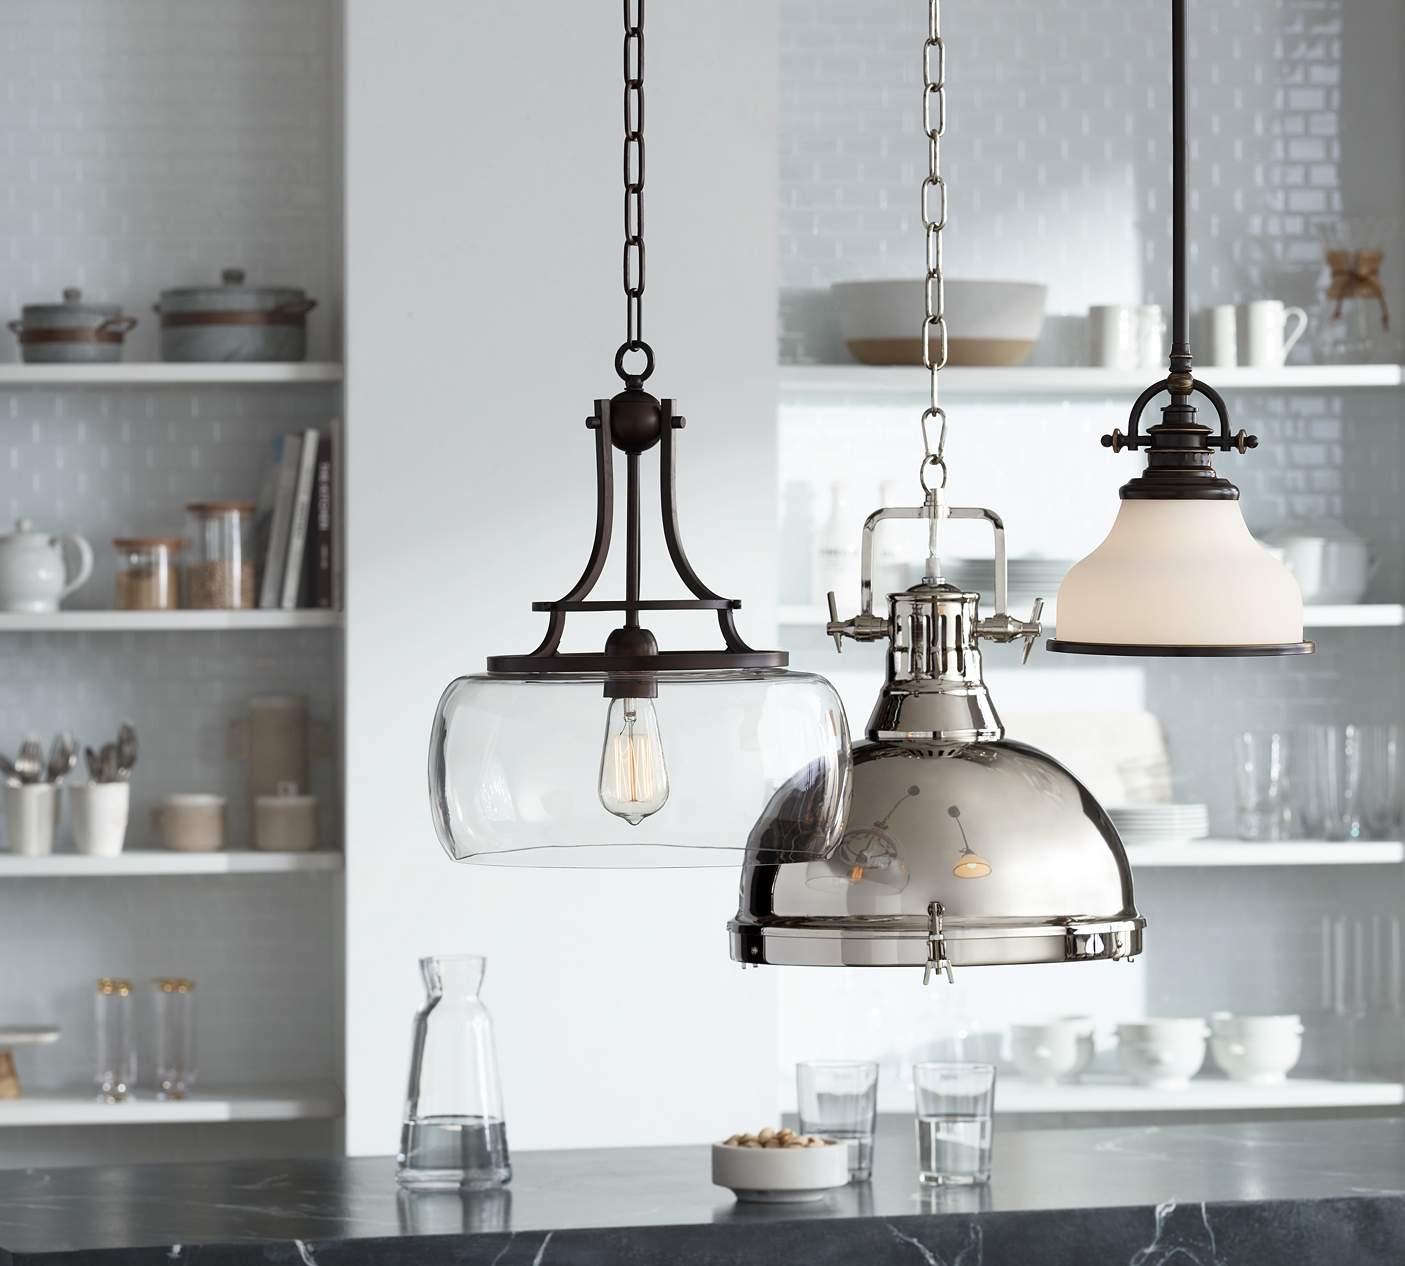 Pendant Lighting How To Hang Pendant Lighting In The Kitchen Ideas Advice